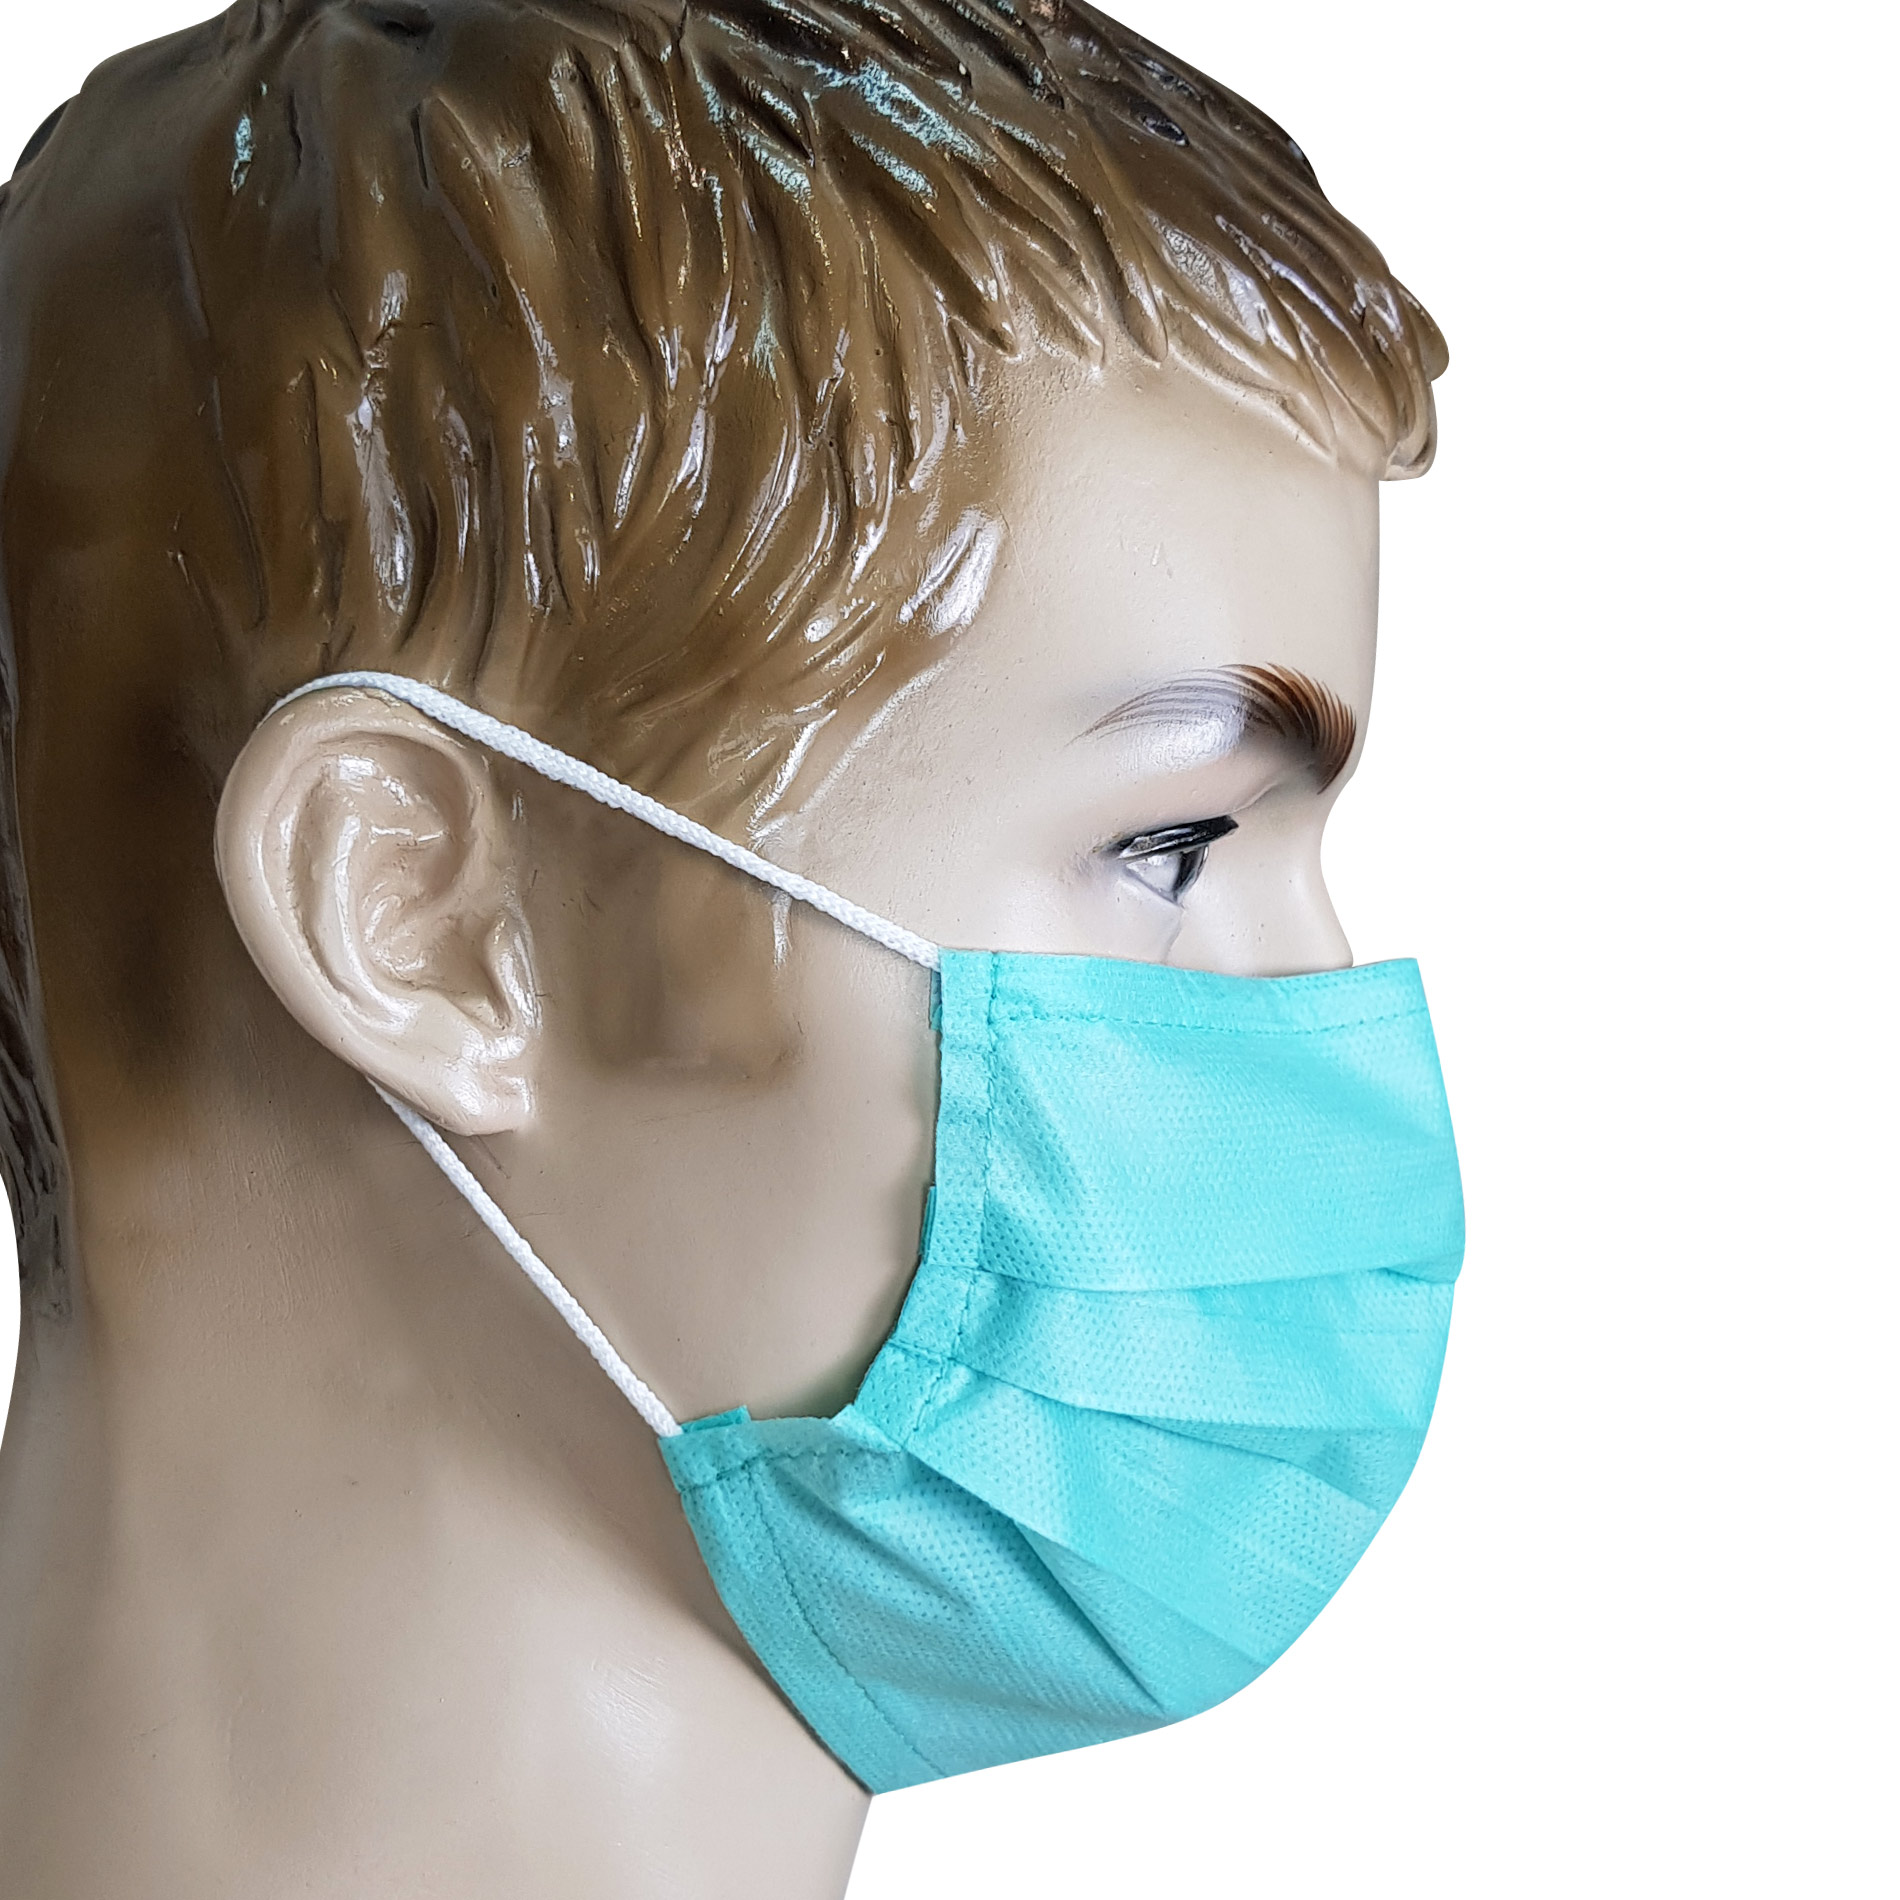 50 pcs Disposable protective mouth Mask 3 Ply Non woven pack,model ssmms